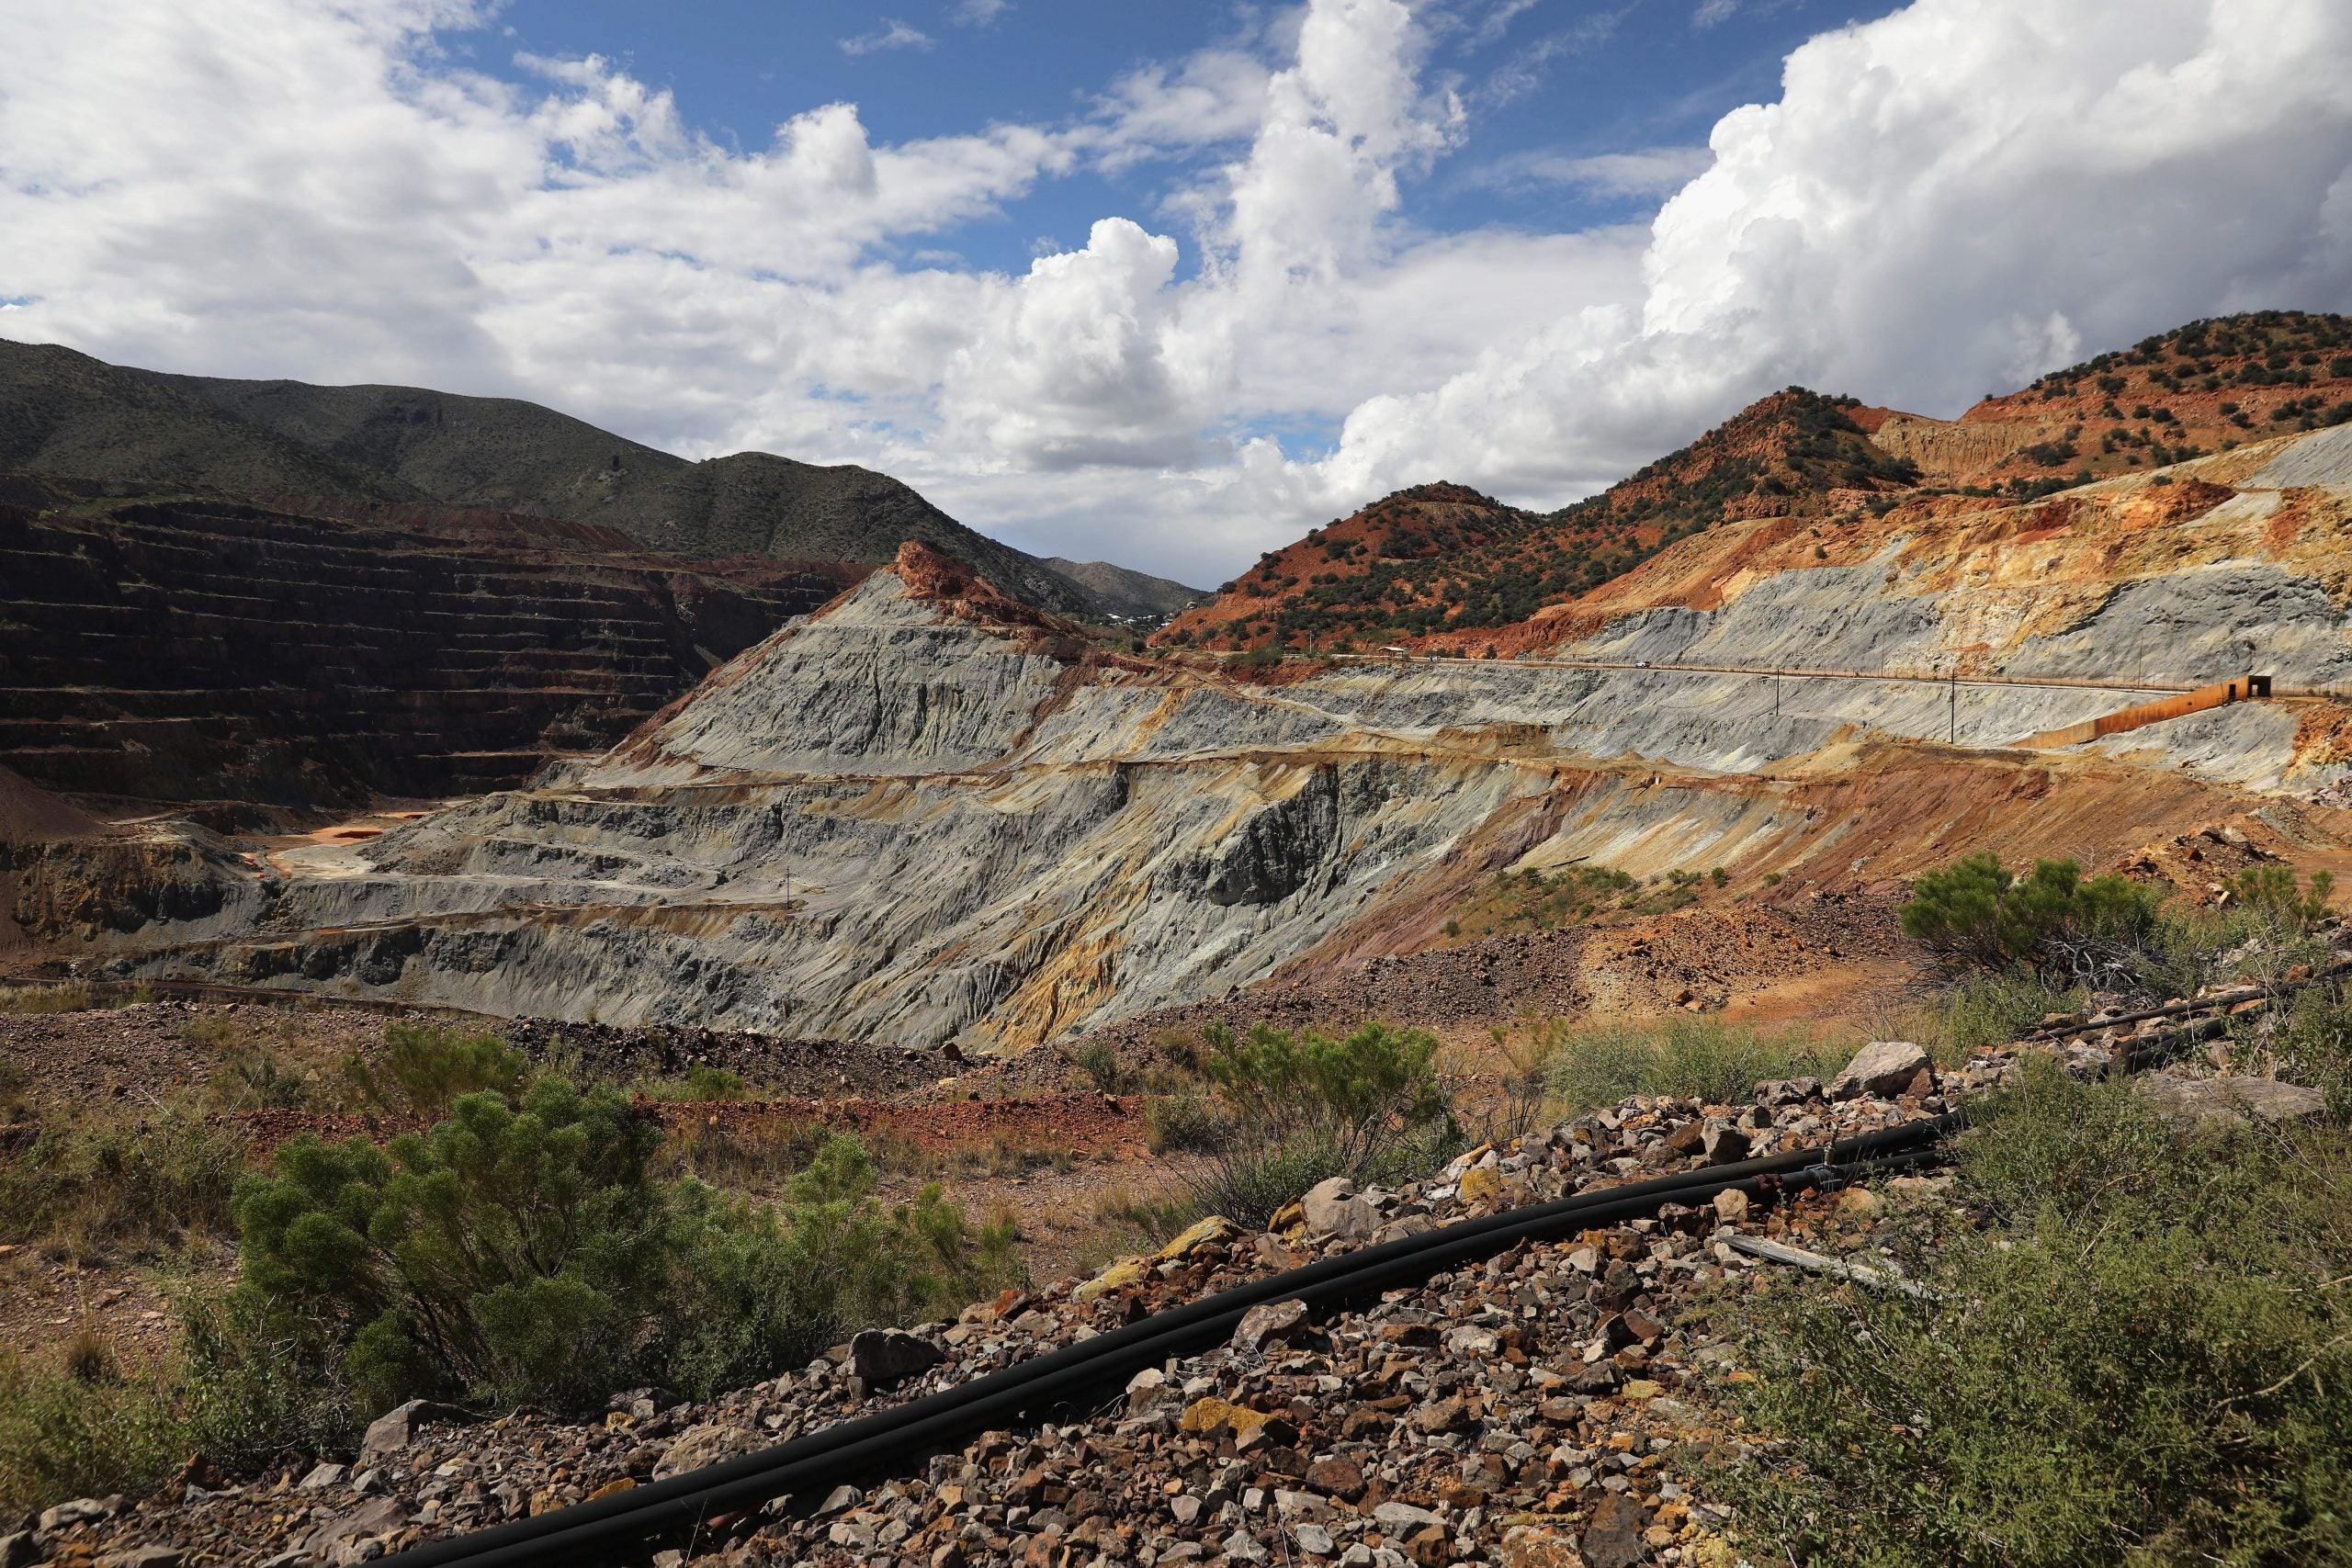 In 1917, corporate America deported more than 1,000 striking miners. Have we learned anything from Bisbee?